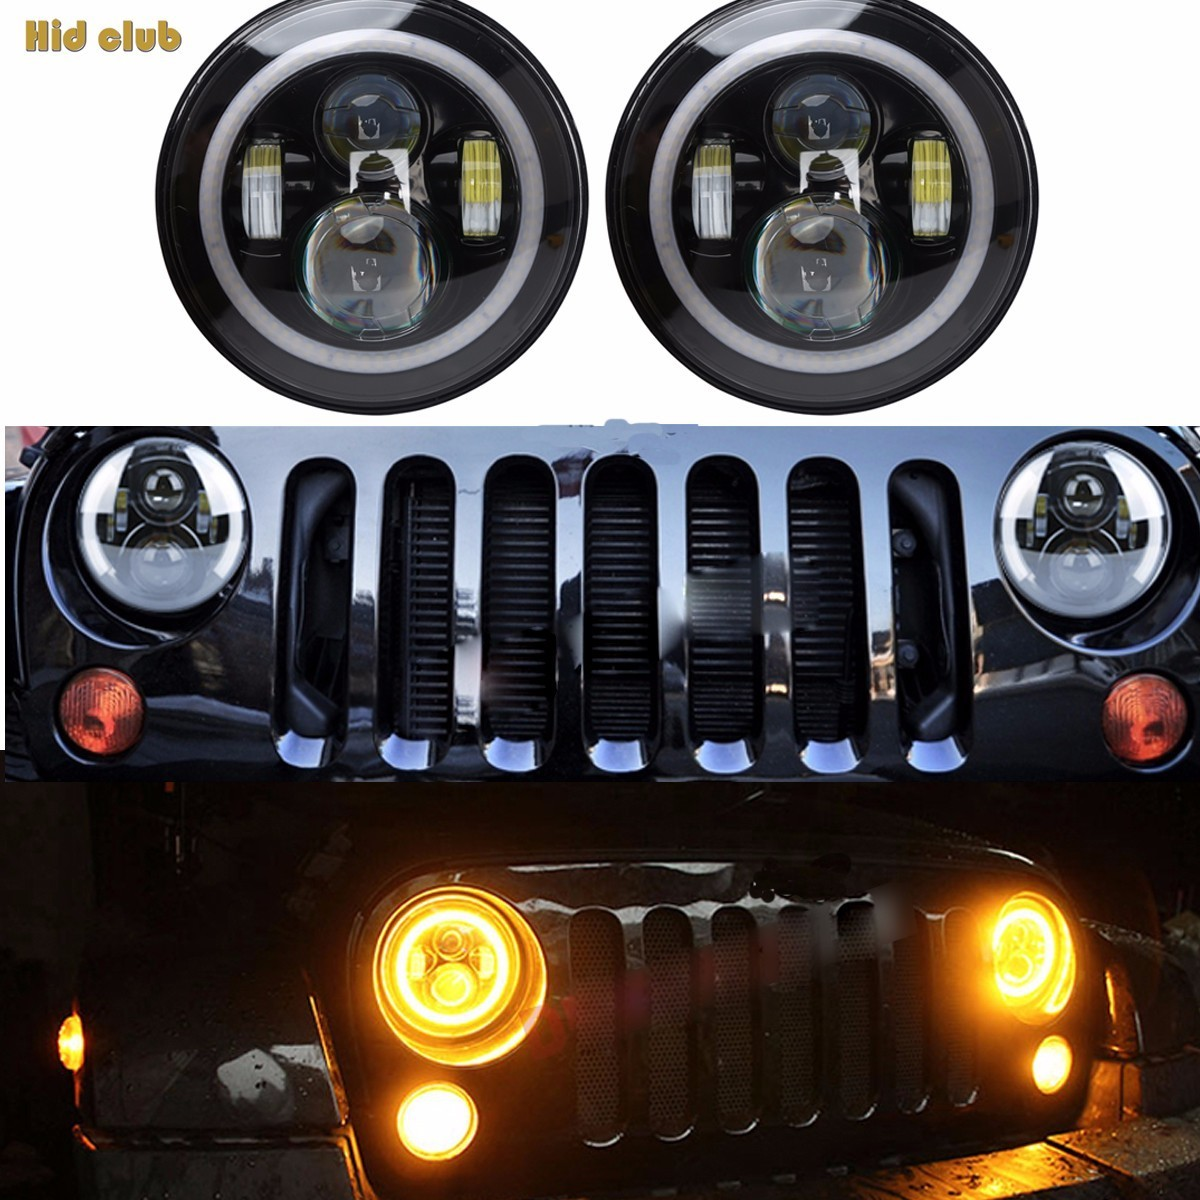 HID CULB  60W 7 Round Led Headlight For Jeep JK/TJ/LJ/CJ F With Cree Chips LED Driving Light And For Hummer Defender cree 7 40w led headlight high low beam round led driving lamp head lights for jeep wrangler jk tj lj cj for hummer h1 h2